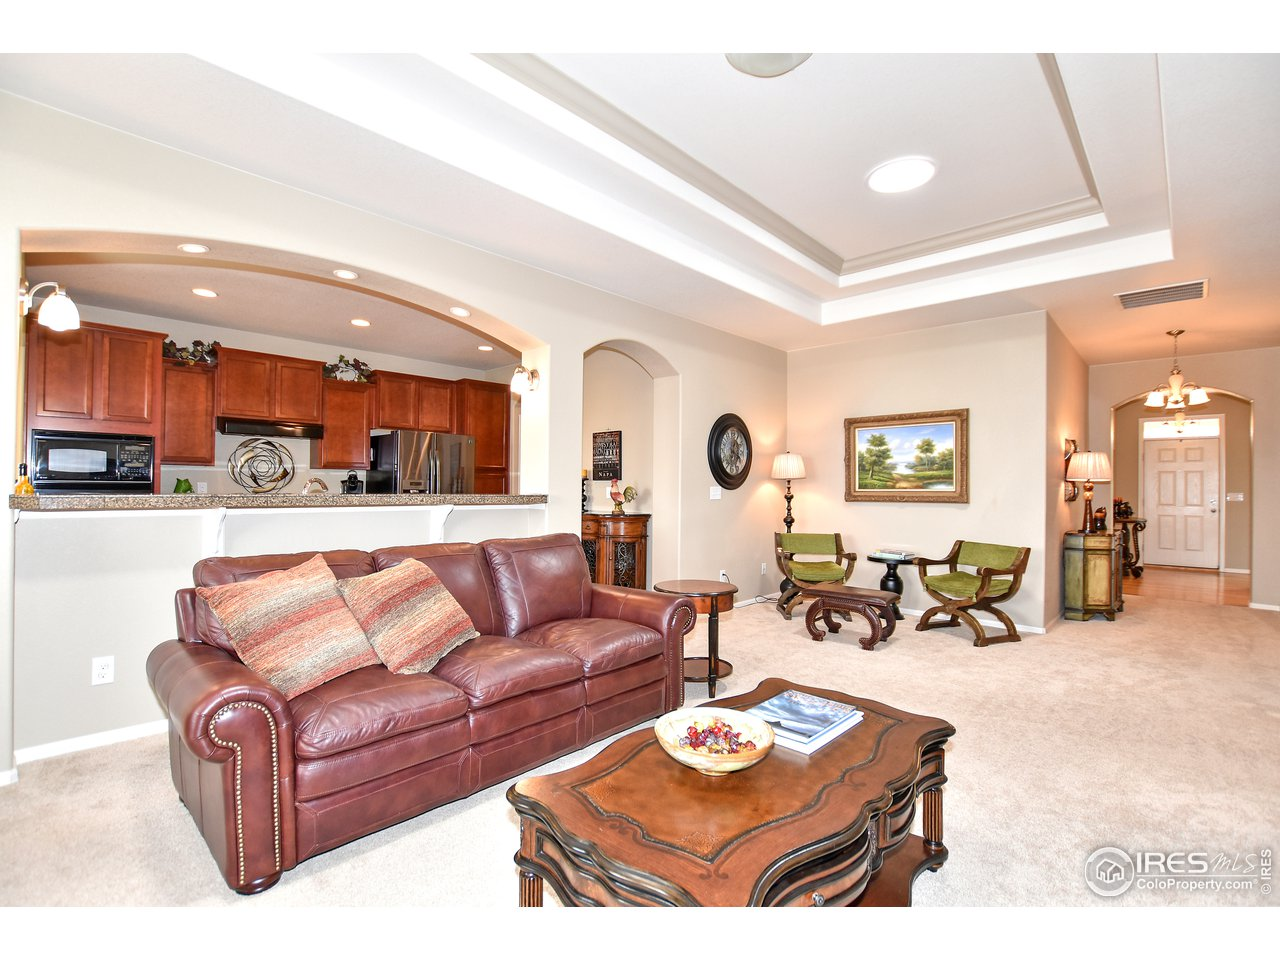 Stunning open floor plan with double tray ceiling